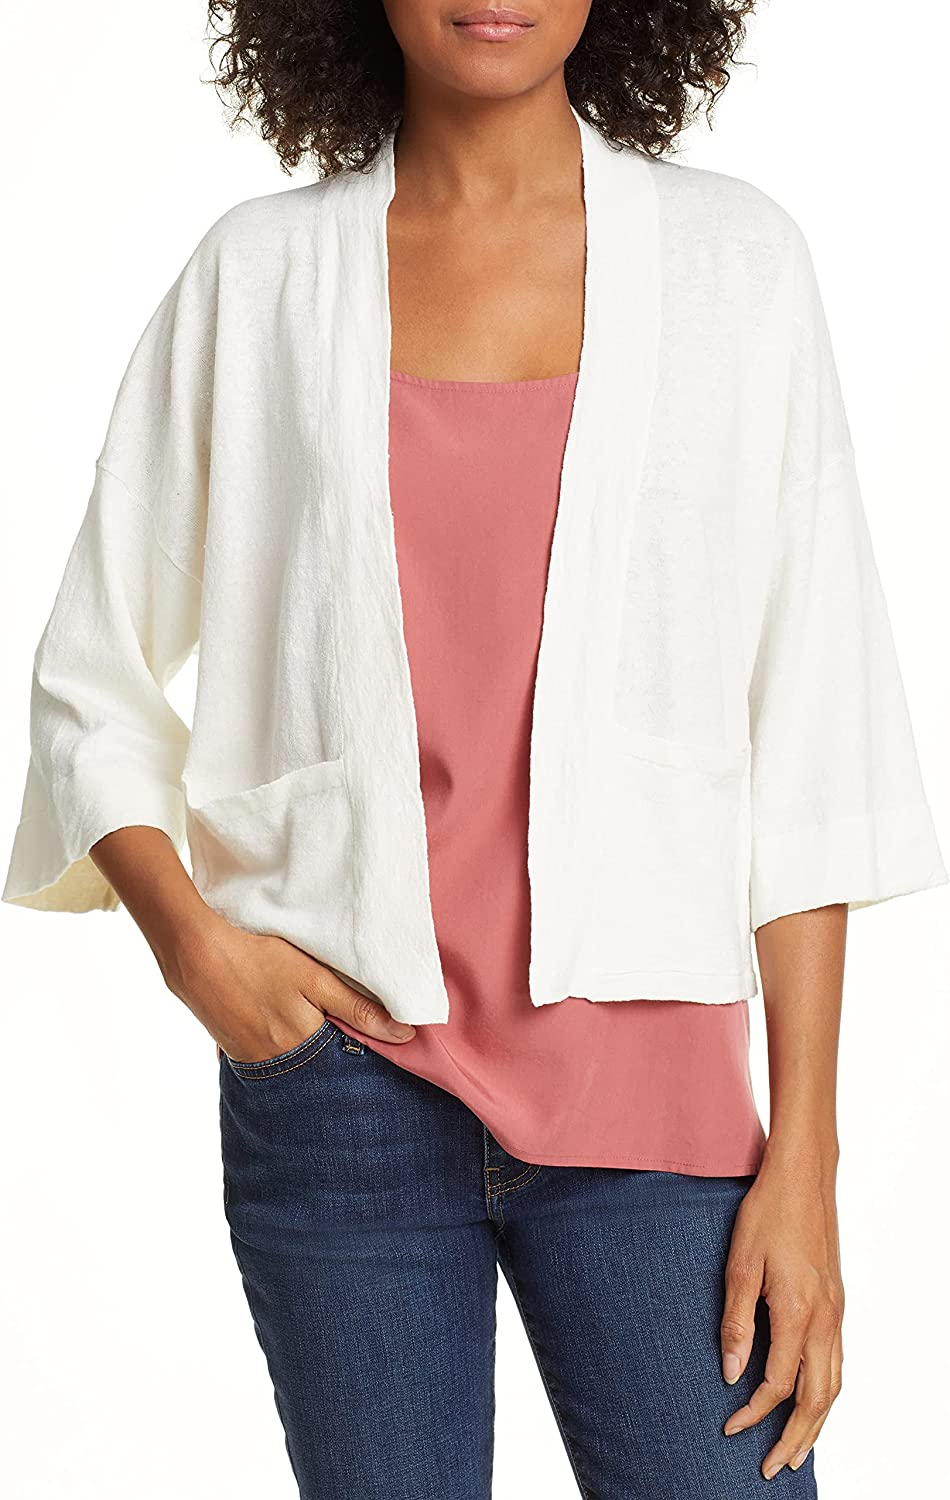 Eileen Fisher Short Boxy Cardigan, Organic Linen Crepe Stretch, Open Front, Cropped Length